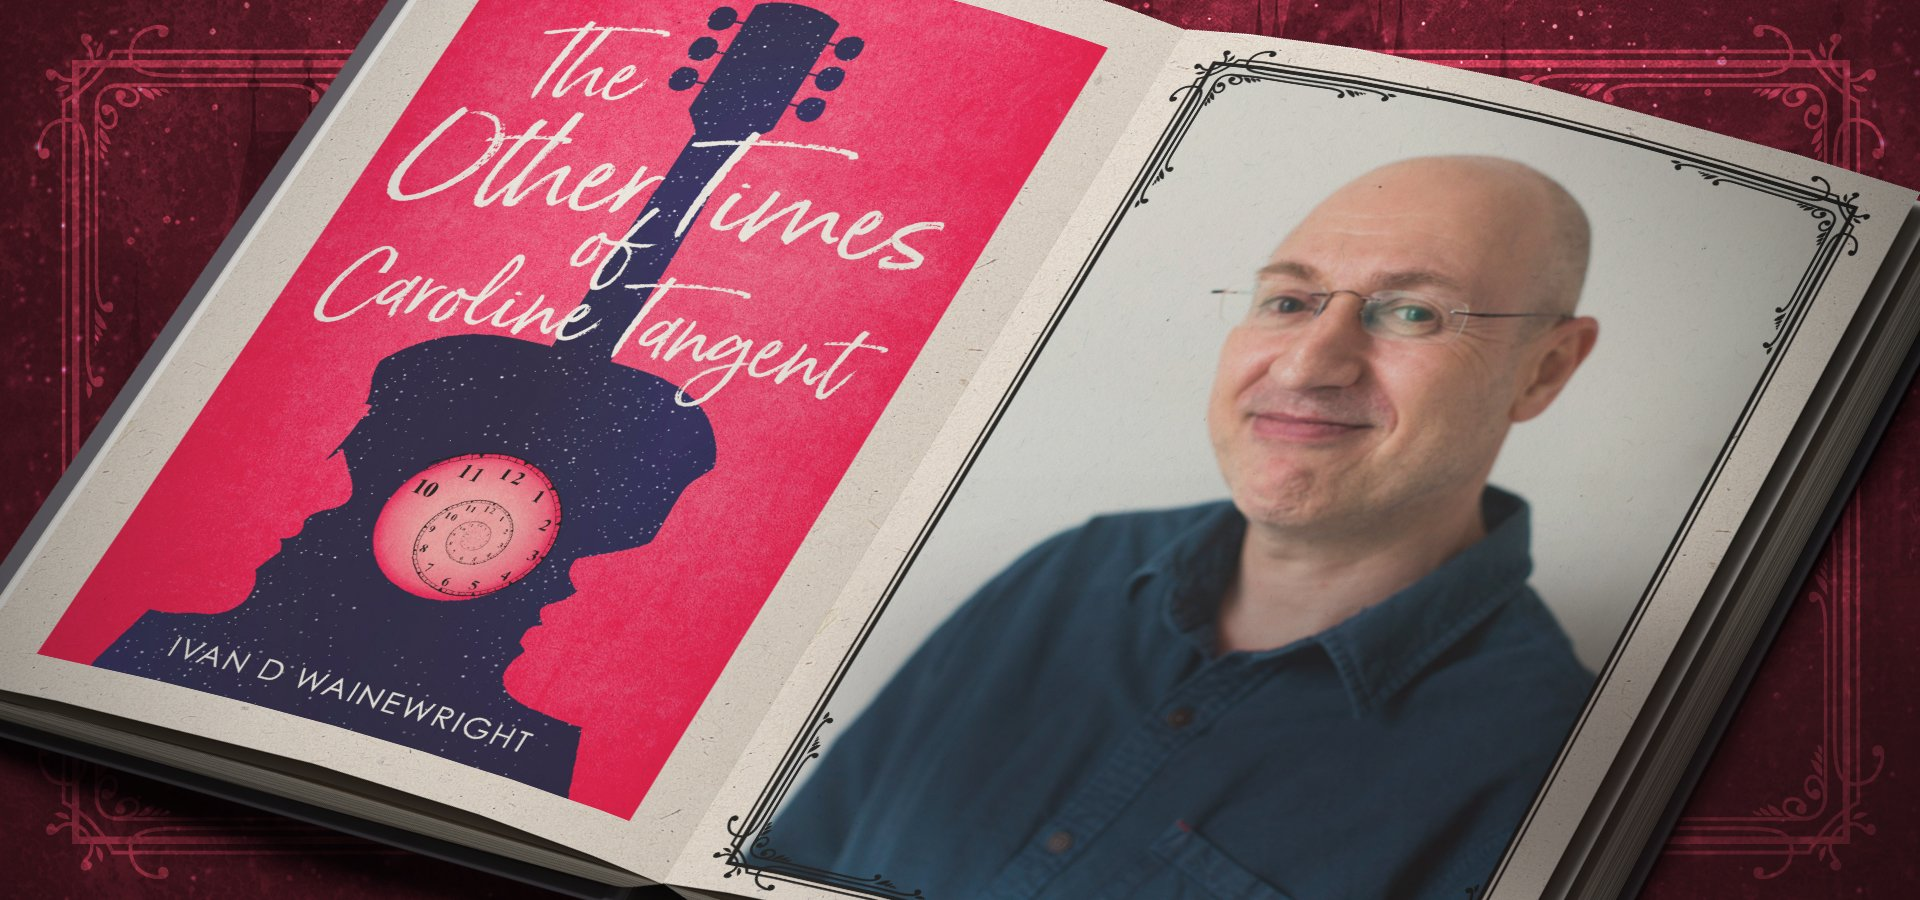 The Other Times of Caroline Tangent by Ivan D Wainewright